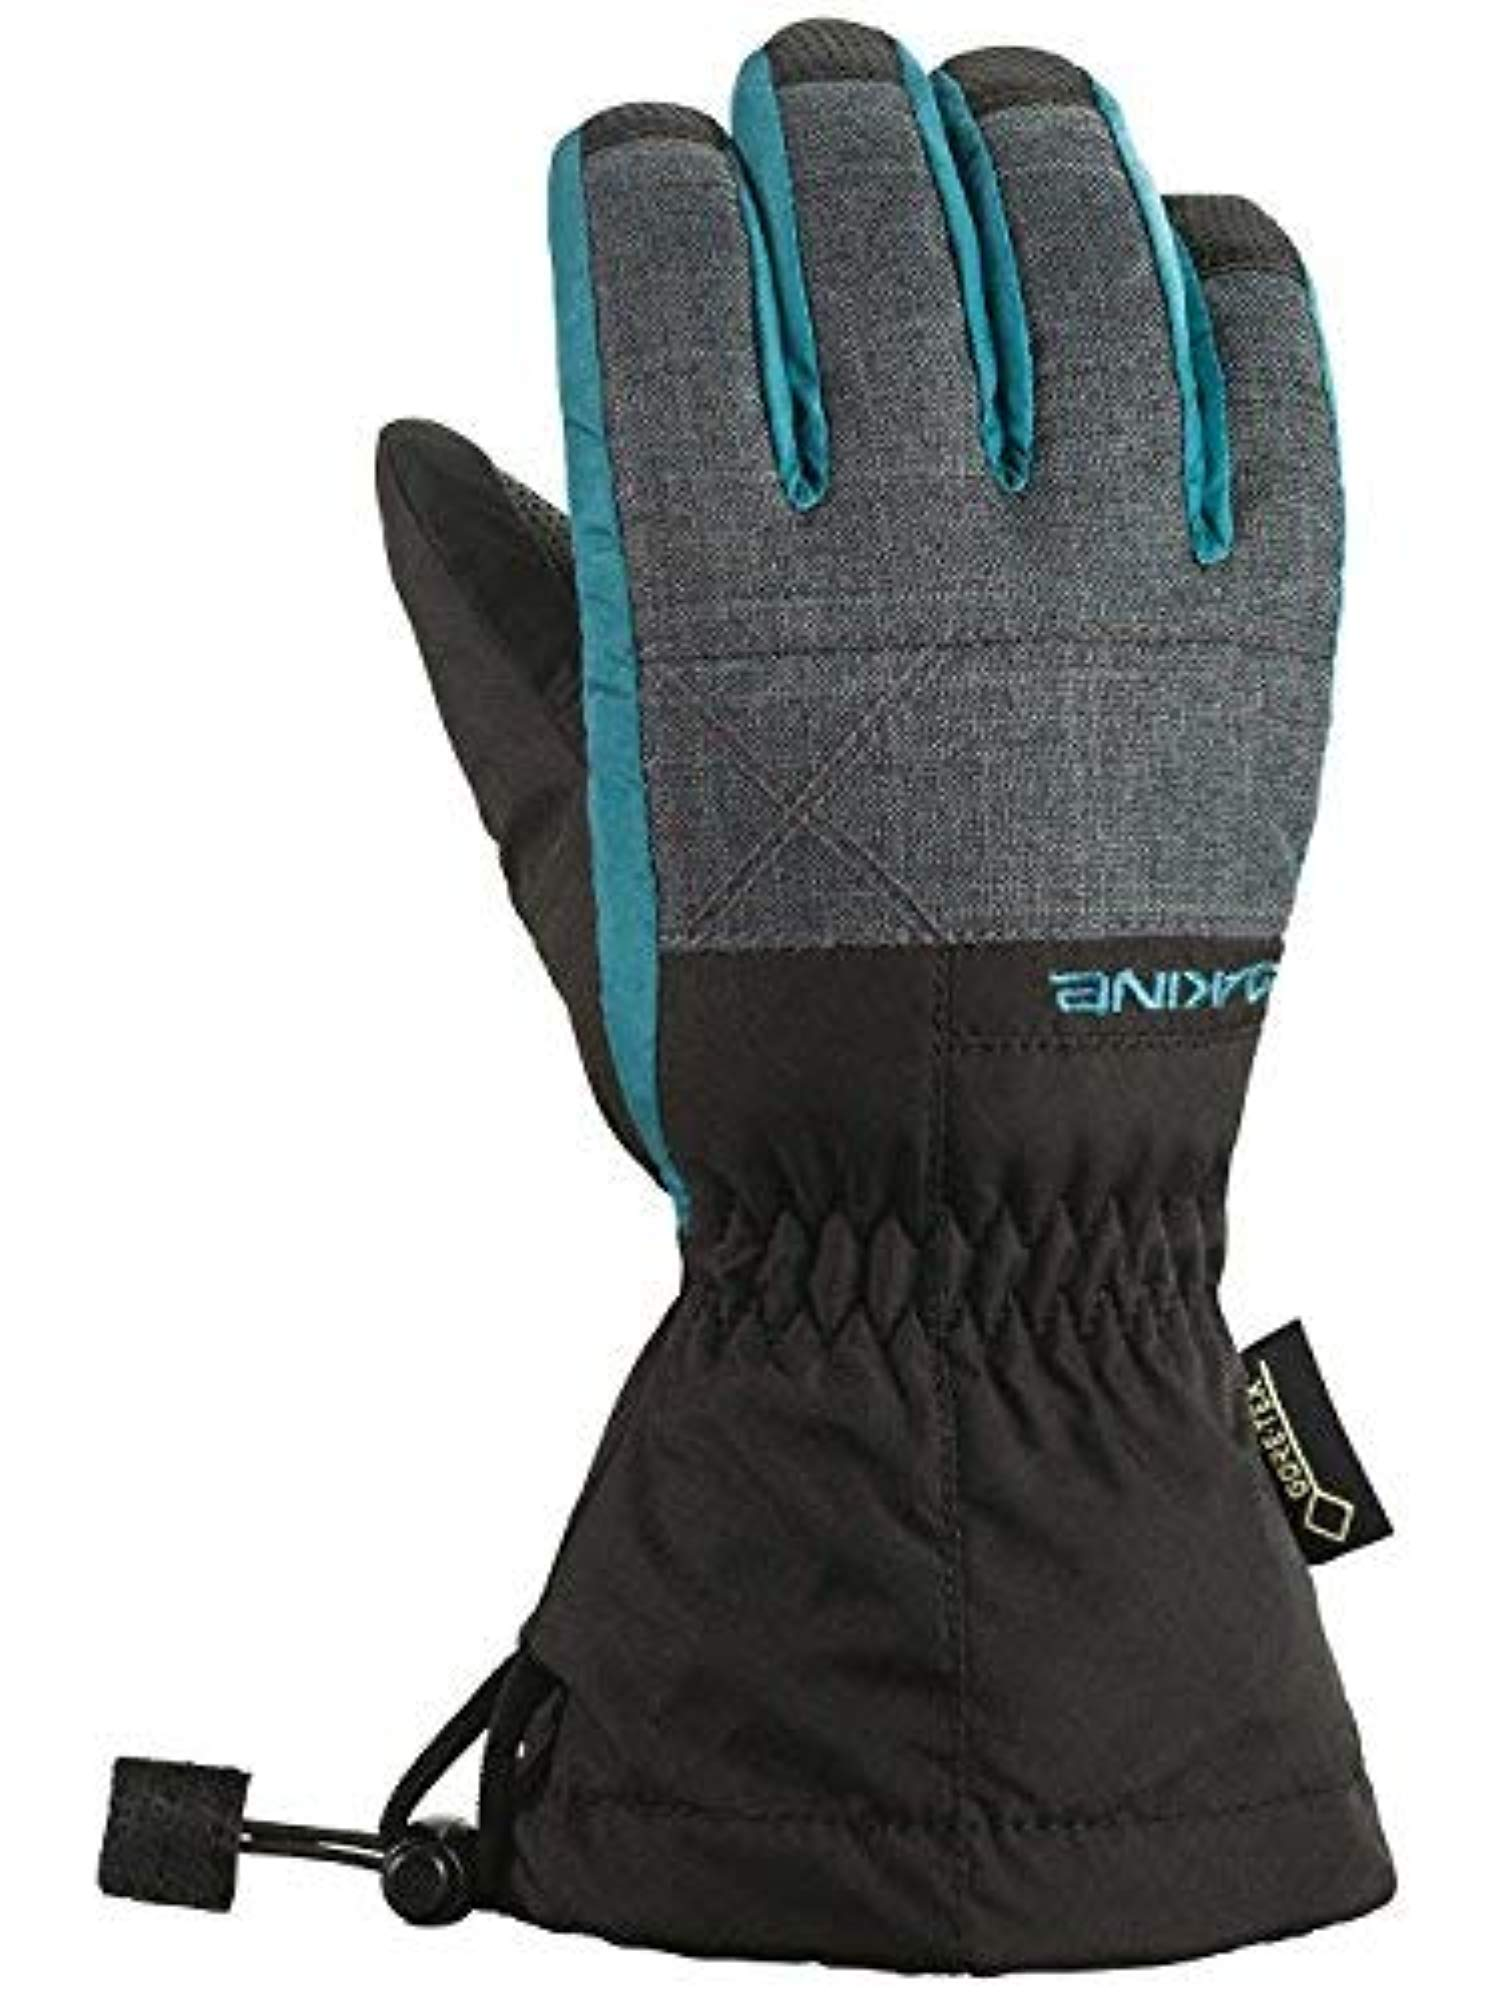 Winter Bundle: Dakine Youth Avenger Gore-Tex Glove Carbon K/X & Knit Cap